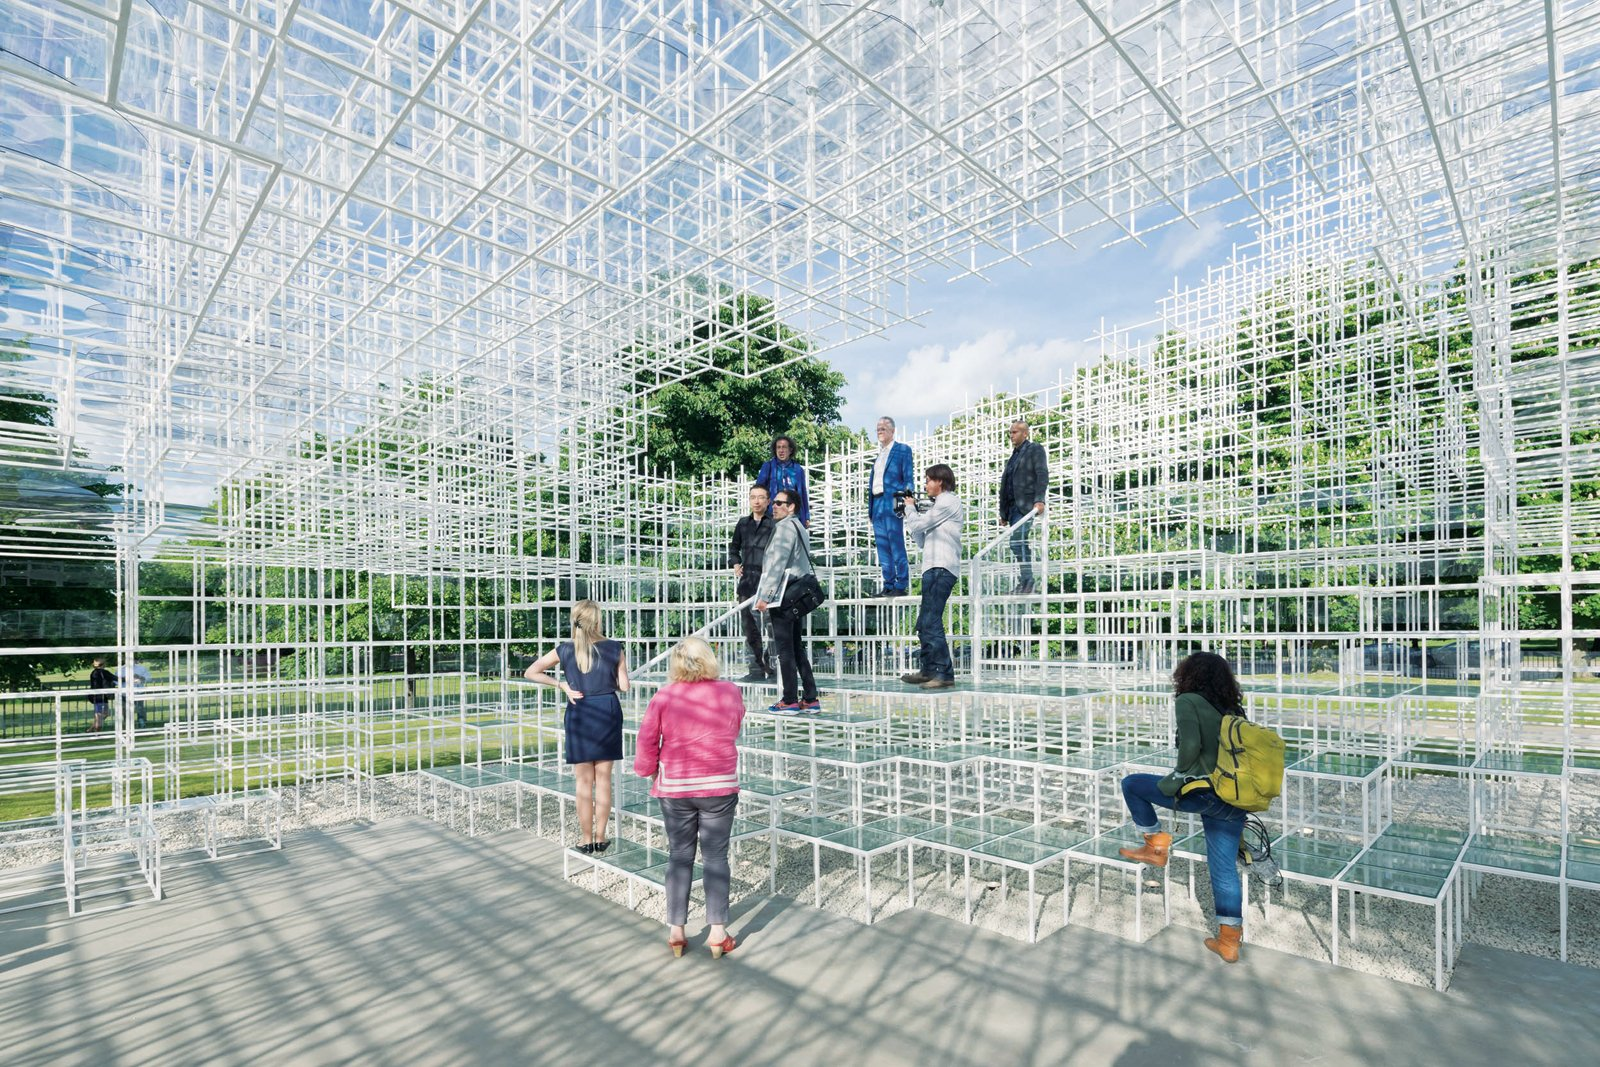 His sketches for the 2013 Serpentine Gallery Pavilion in London were rendered into small paper and foam models, then into assemblages of wooden dowels, and ended up as an enveloping array of delicate steel bars (seen here). He is the youngest architect ever to receive the prestigious commission.  Photo 2 of 6 in Architect We Love: Sou Fujimoto